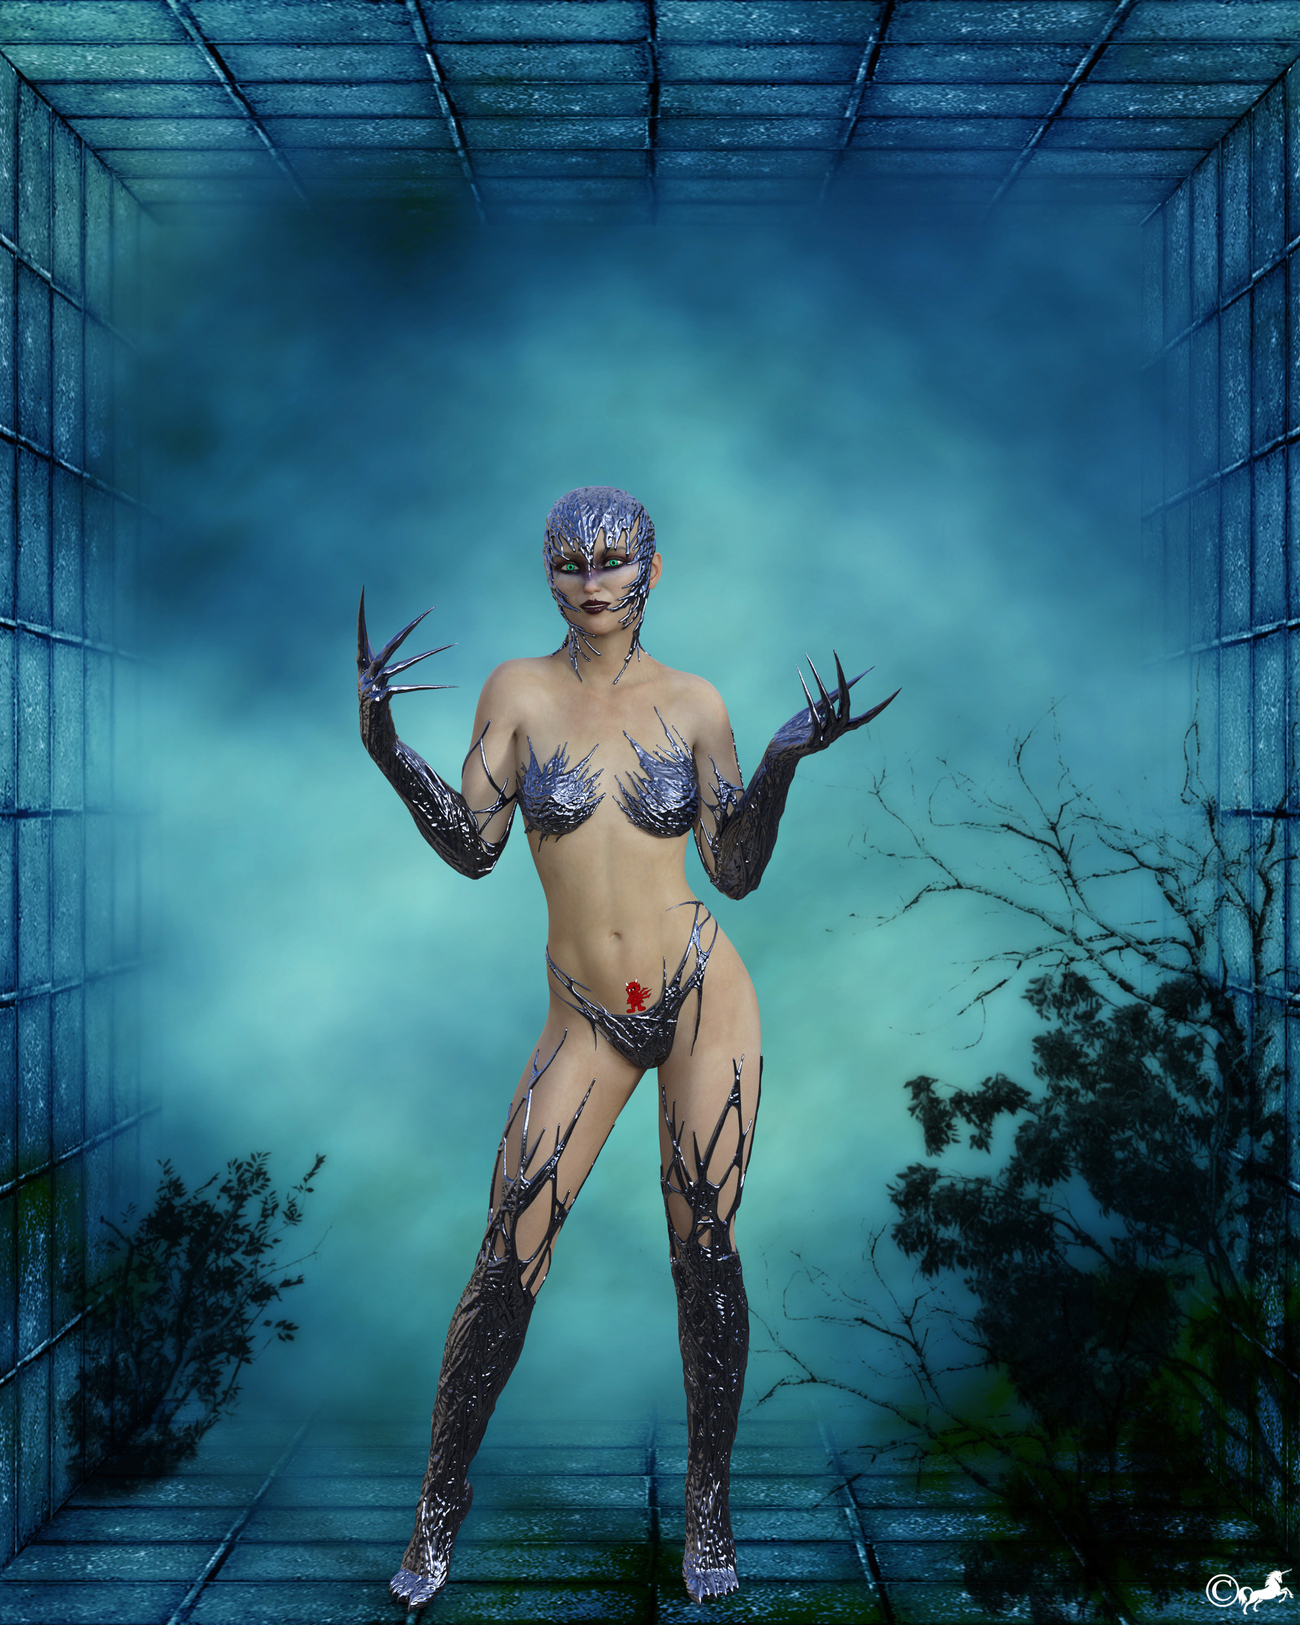 DAZ 371 or Steel Wood Design